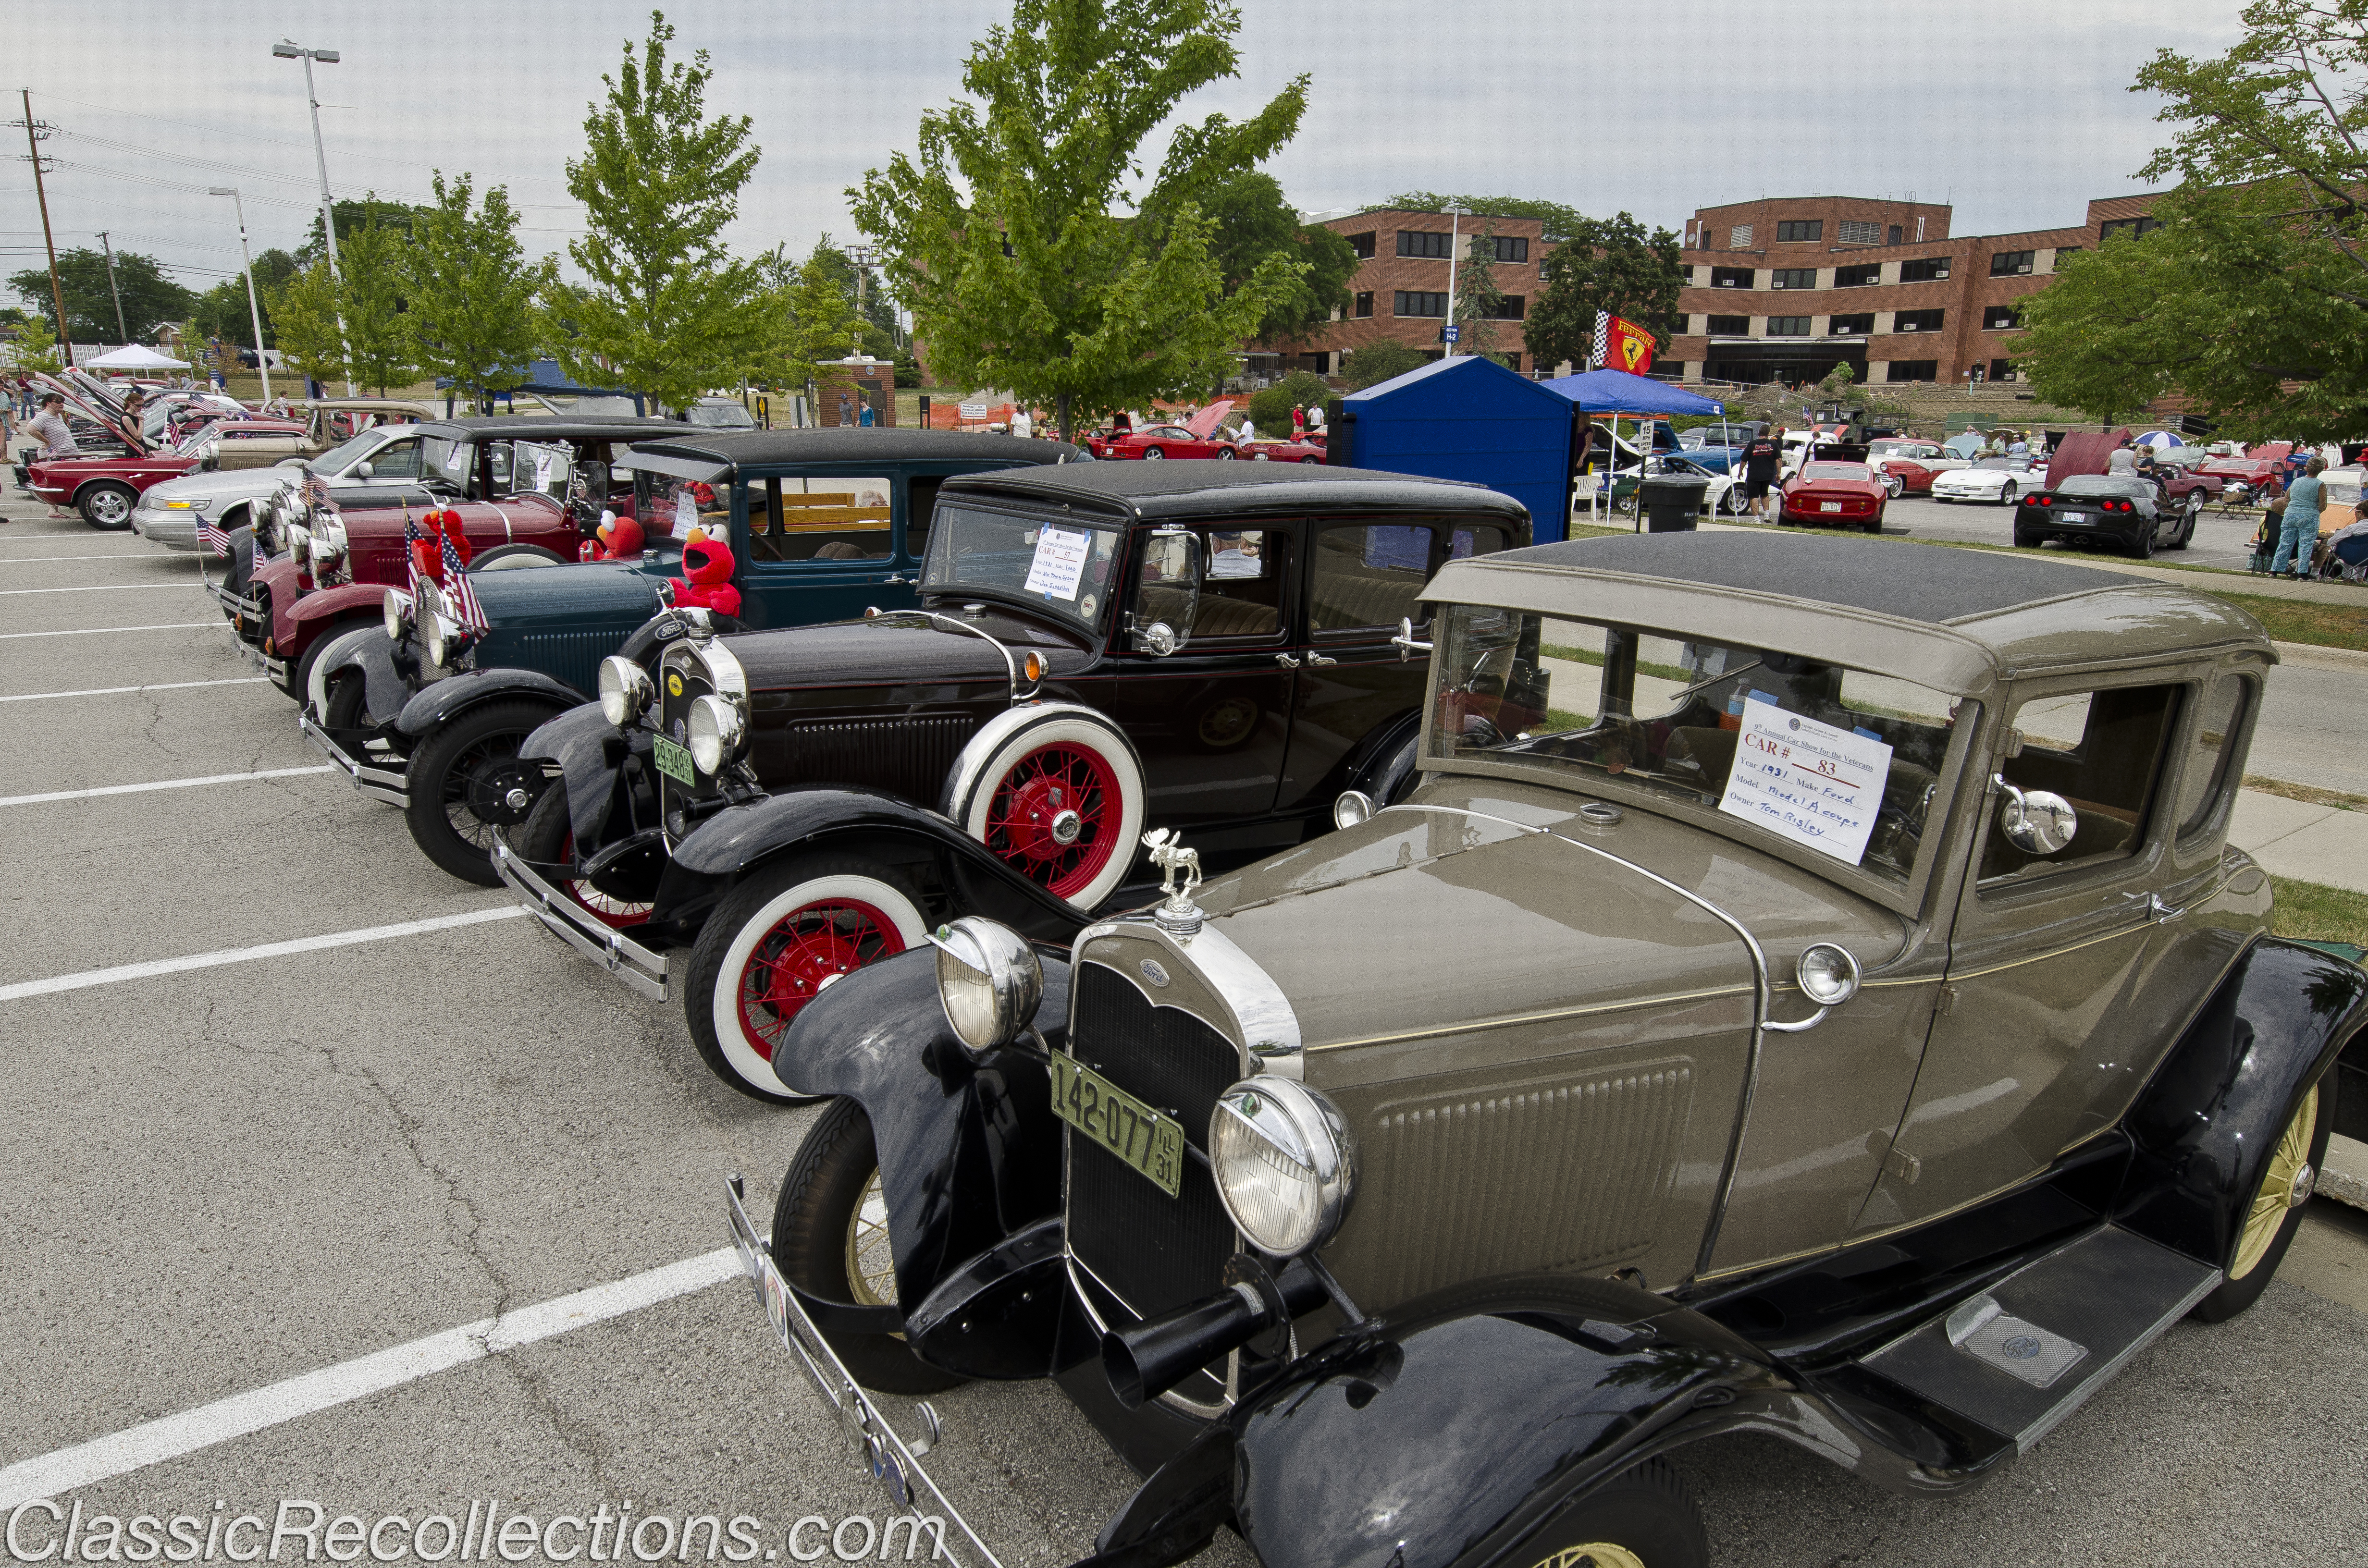 CAR SHOWS: Great Lakes, IL VA Hospital – Classic Recollections